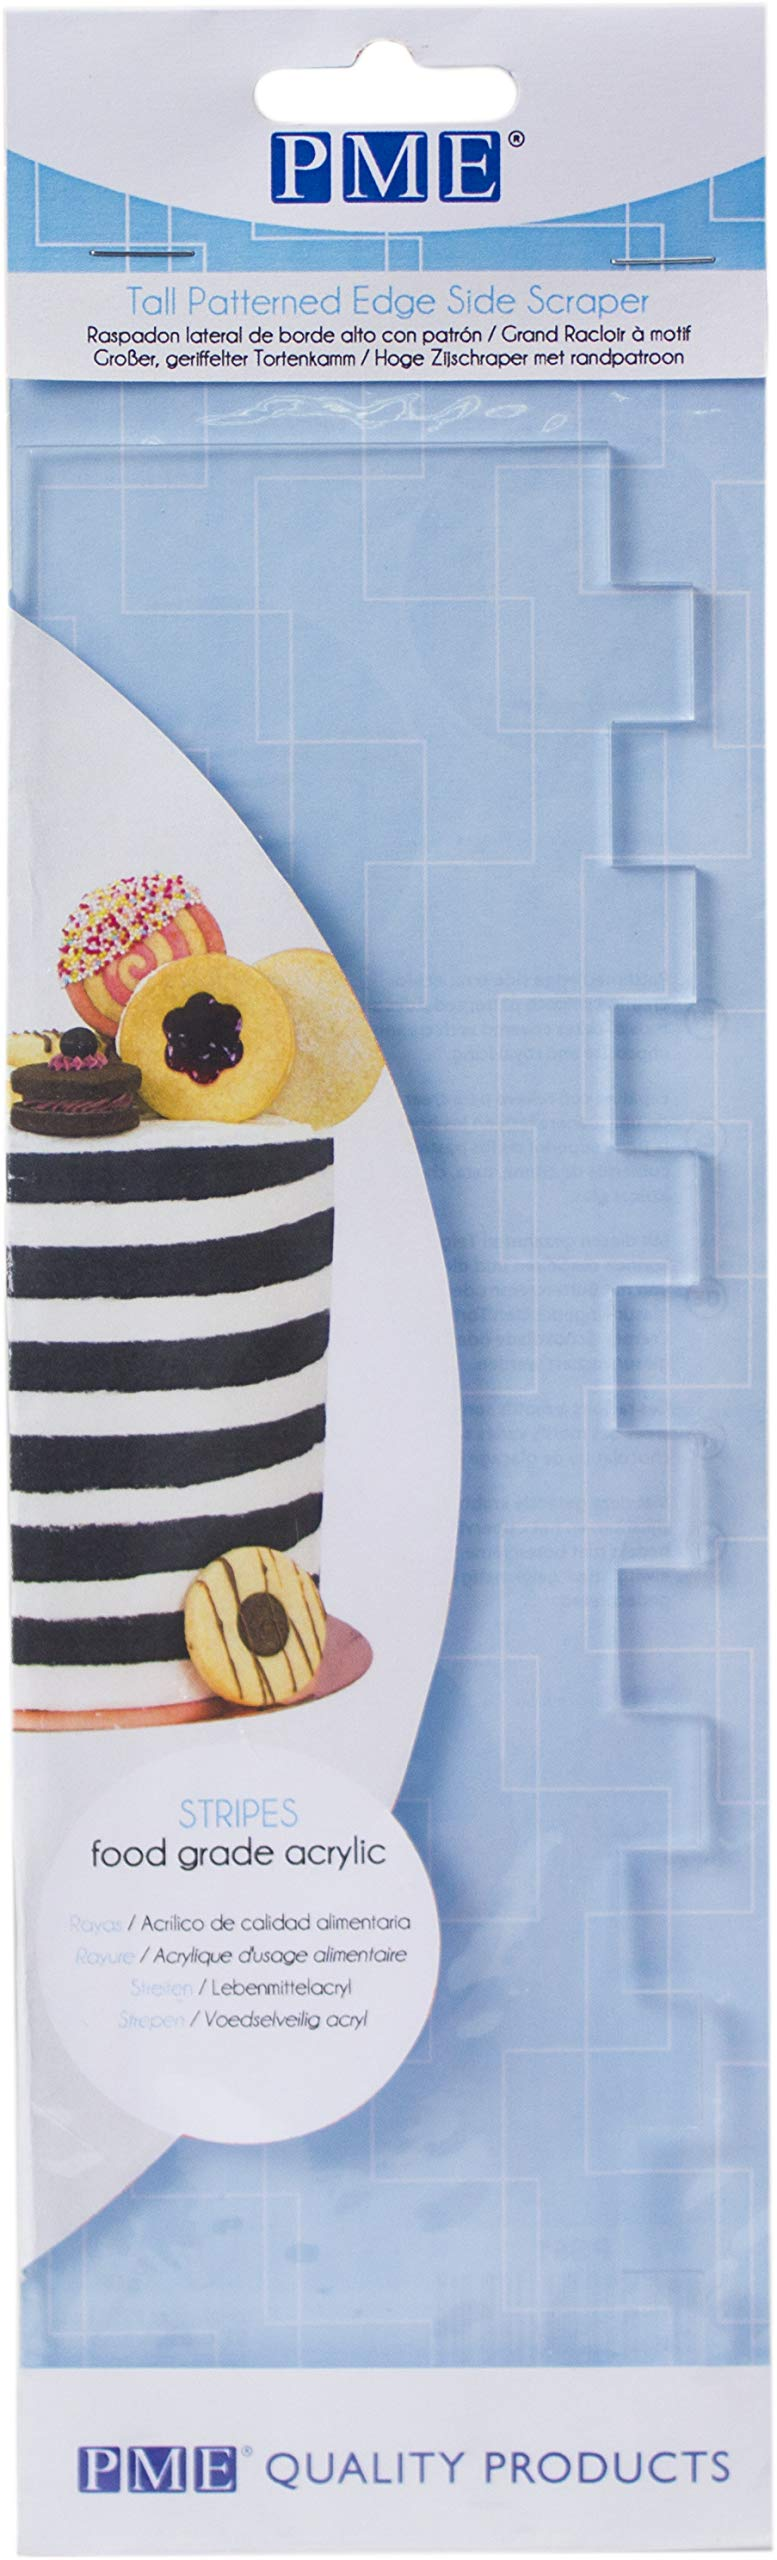 PME PS61 Tall Patterned Edge Side Scraper for Cake Decorating-Stripes, 10 in in, Transparent